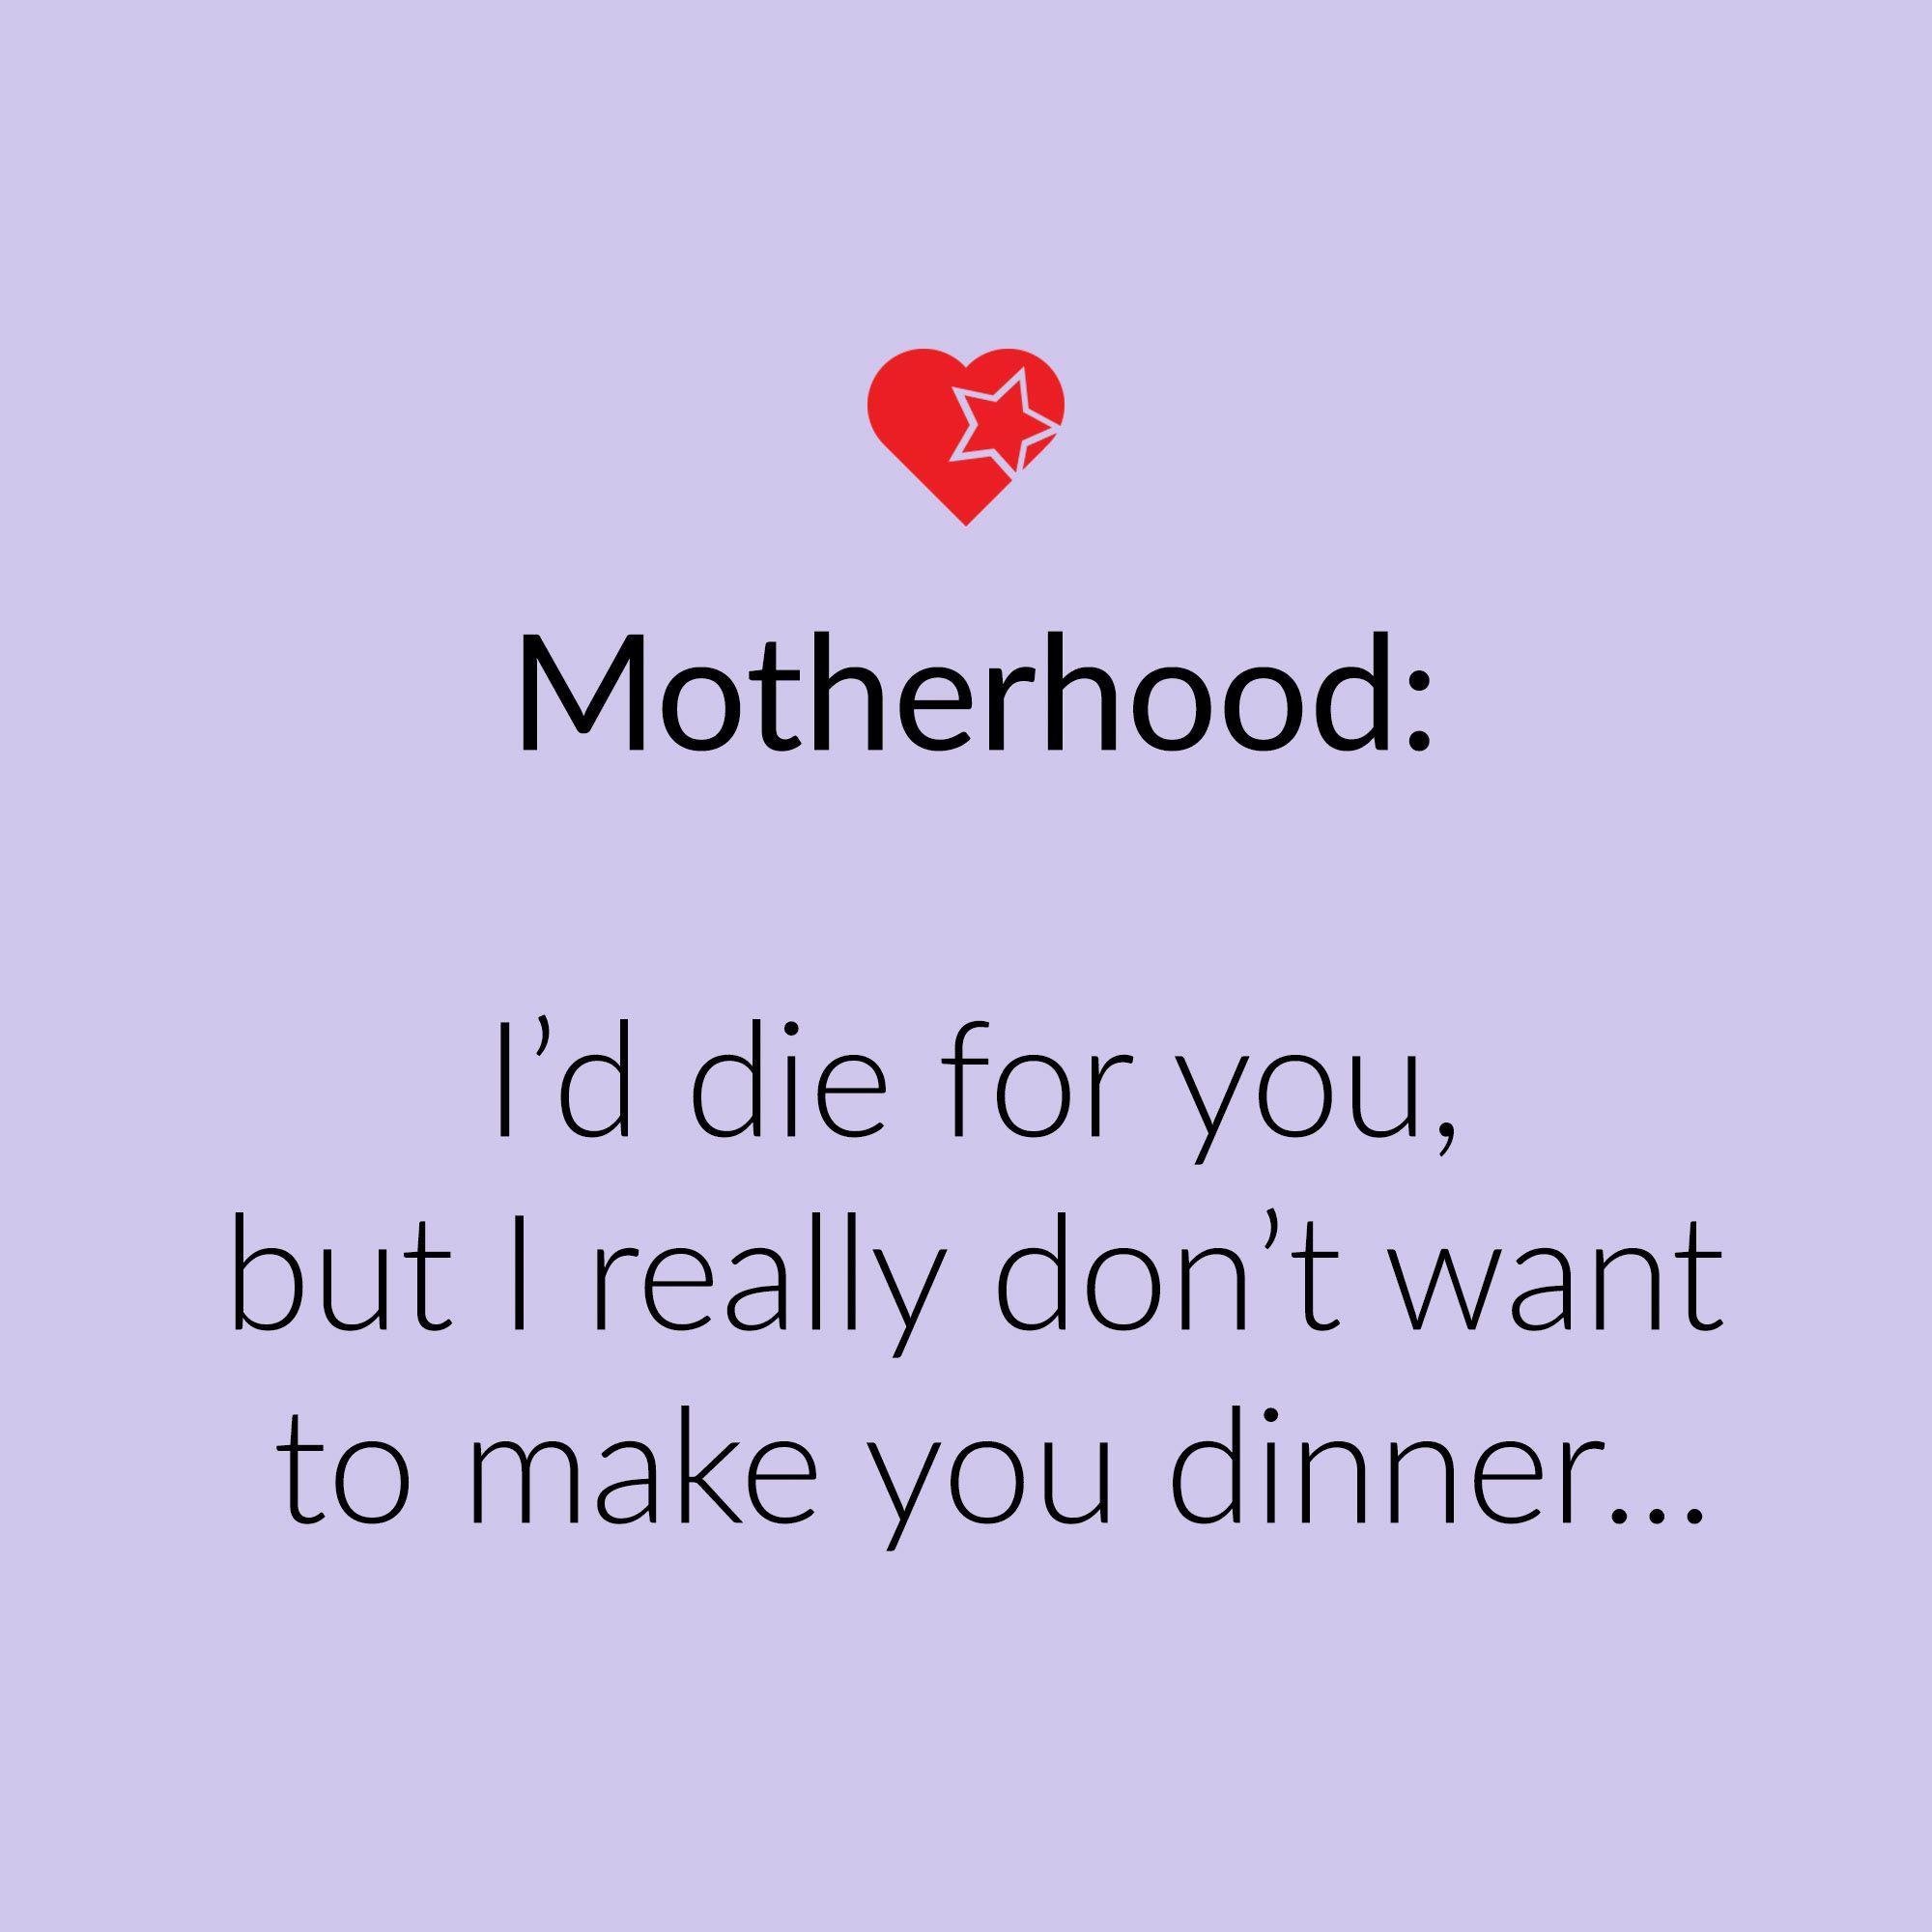 Funny Motherhood Quote Motherhood Quotes Funny Quotes About Motherhood Mommy Humor